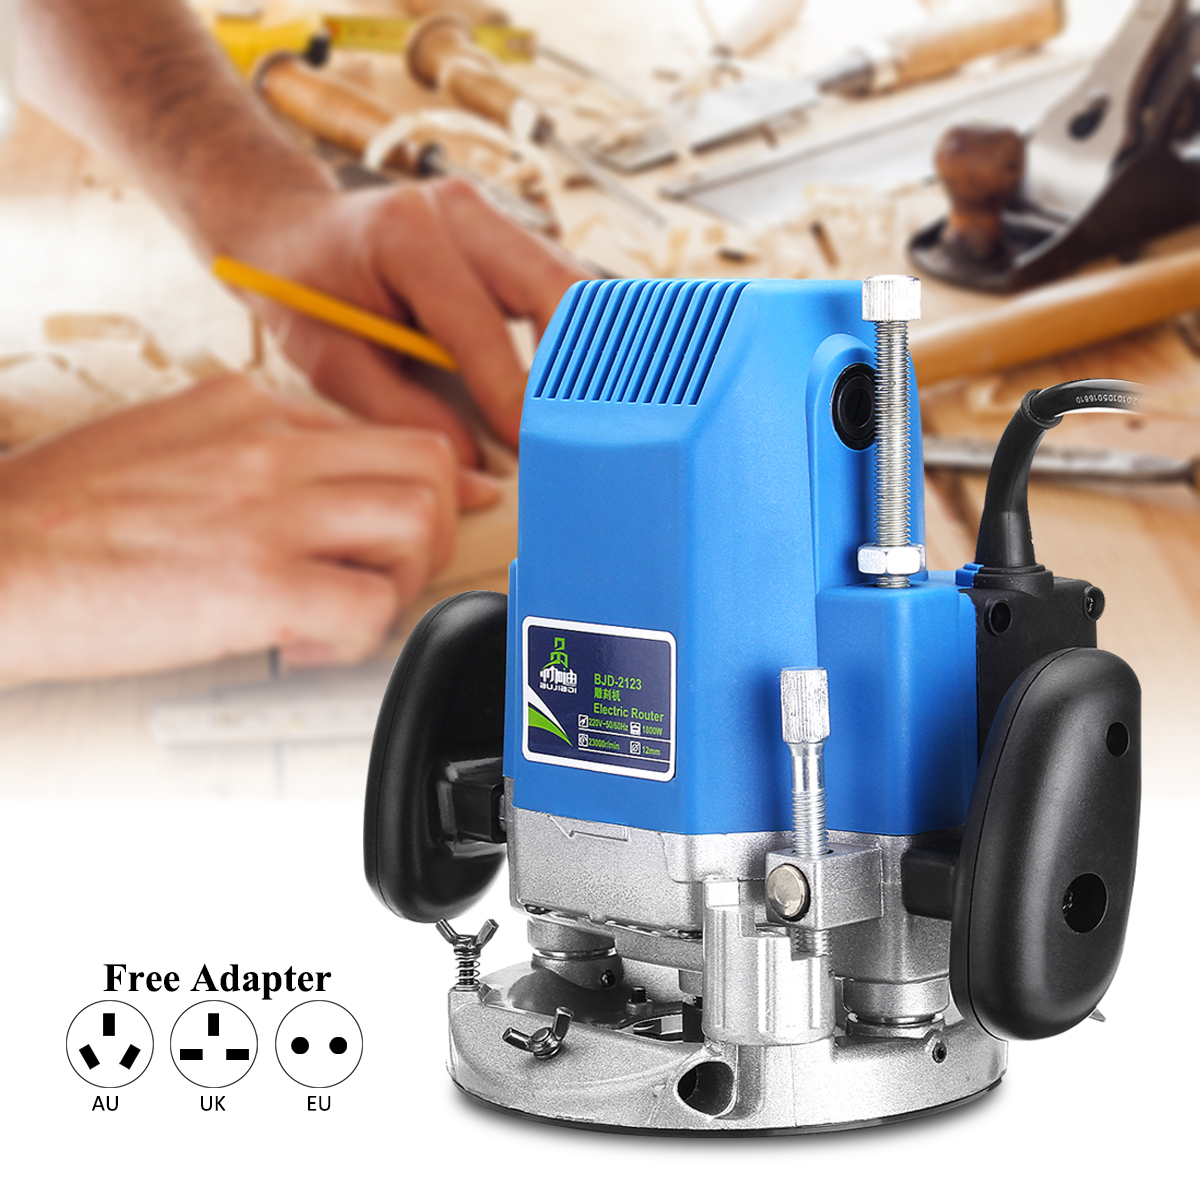 1800W 220V 1/4 Electric Trimmer Wood Router Laminate 23000RPM Woodworking Electric Trimming Router Carving Power Joiners Tool 220v high power woodworking engraving machine electric router grooving trimming machine 1800w 23000rpm